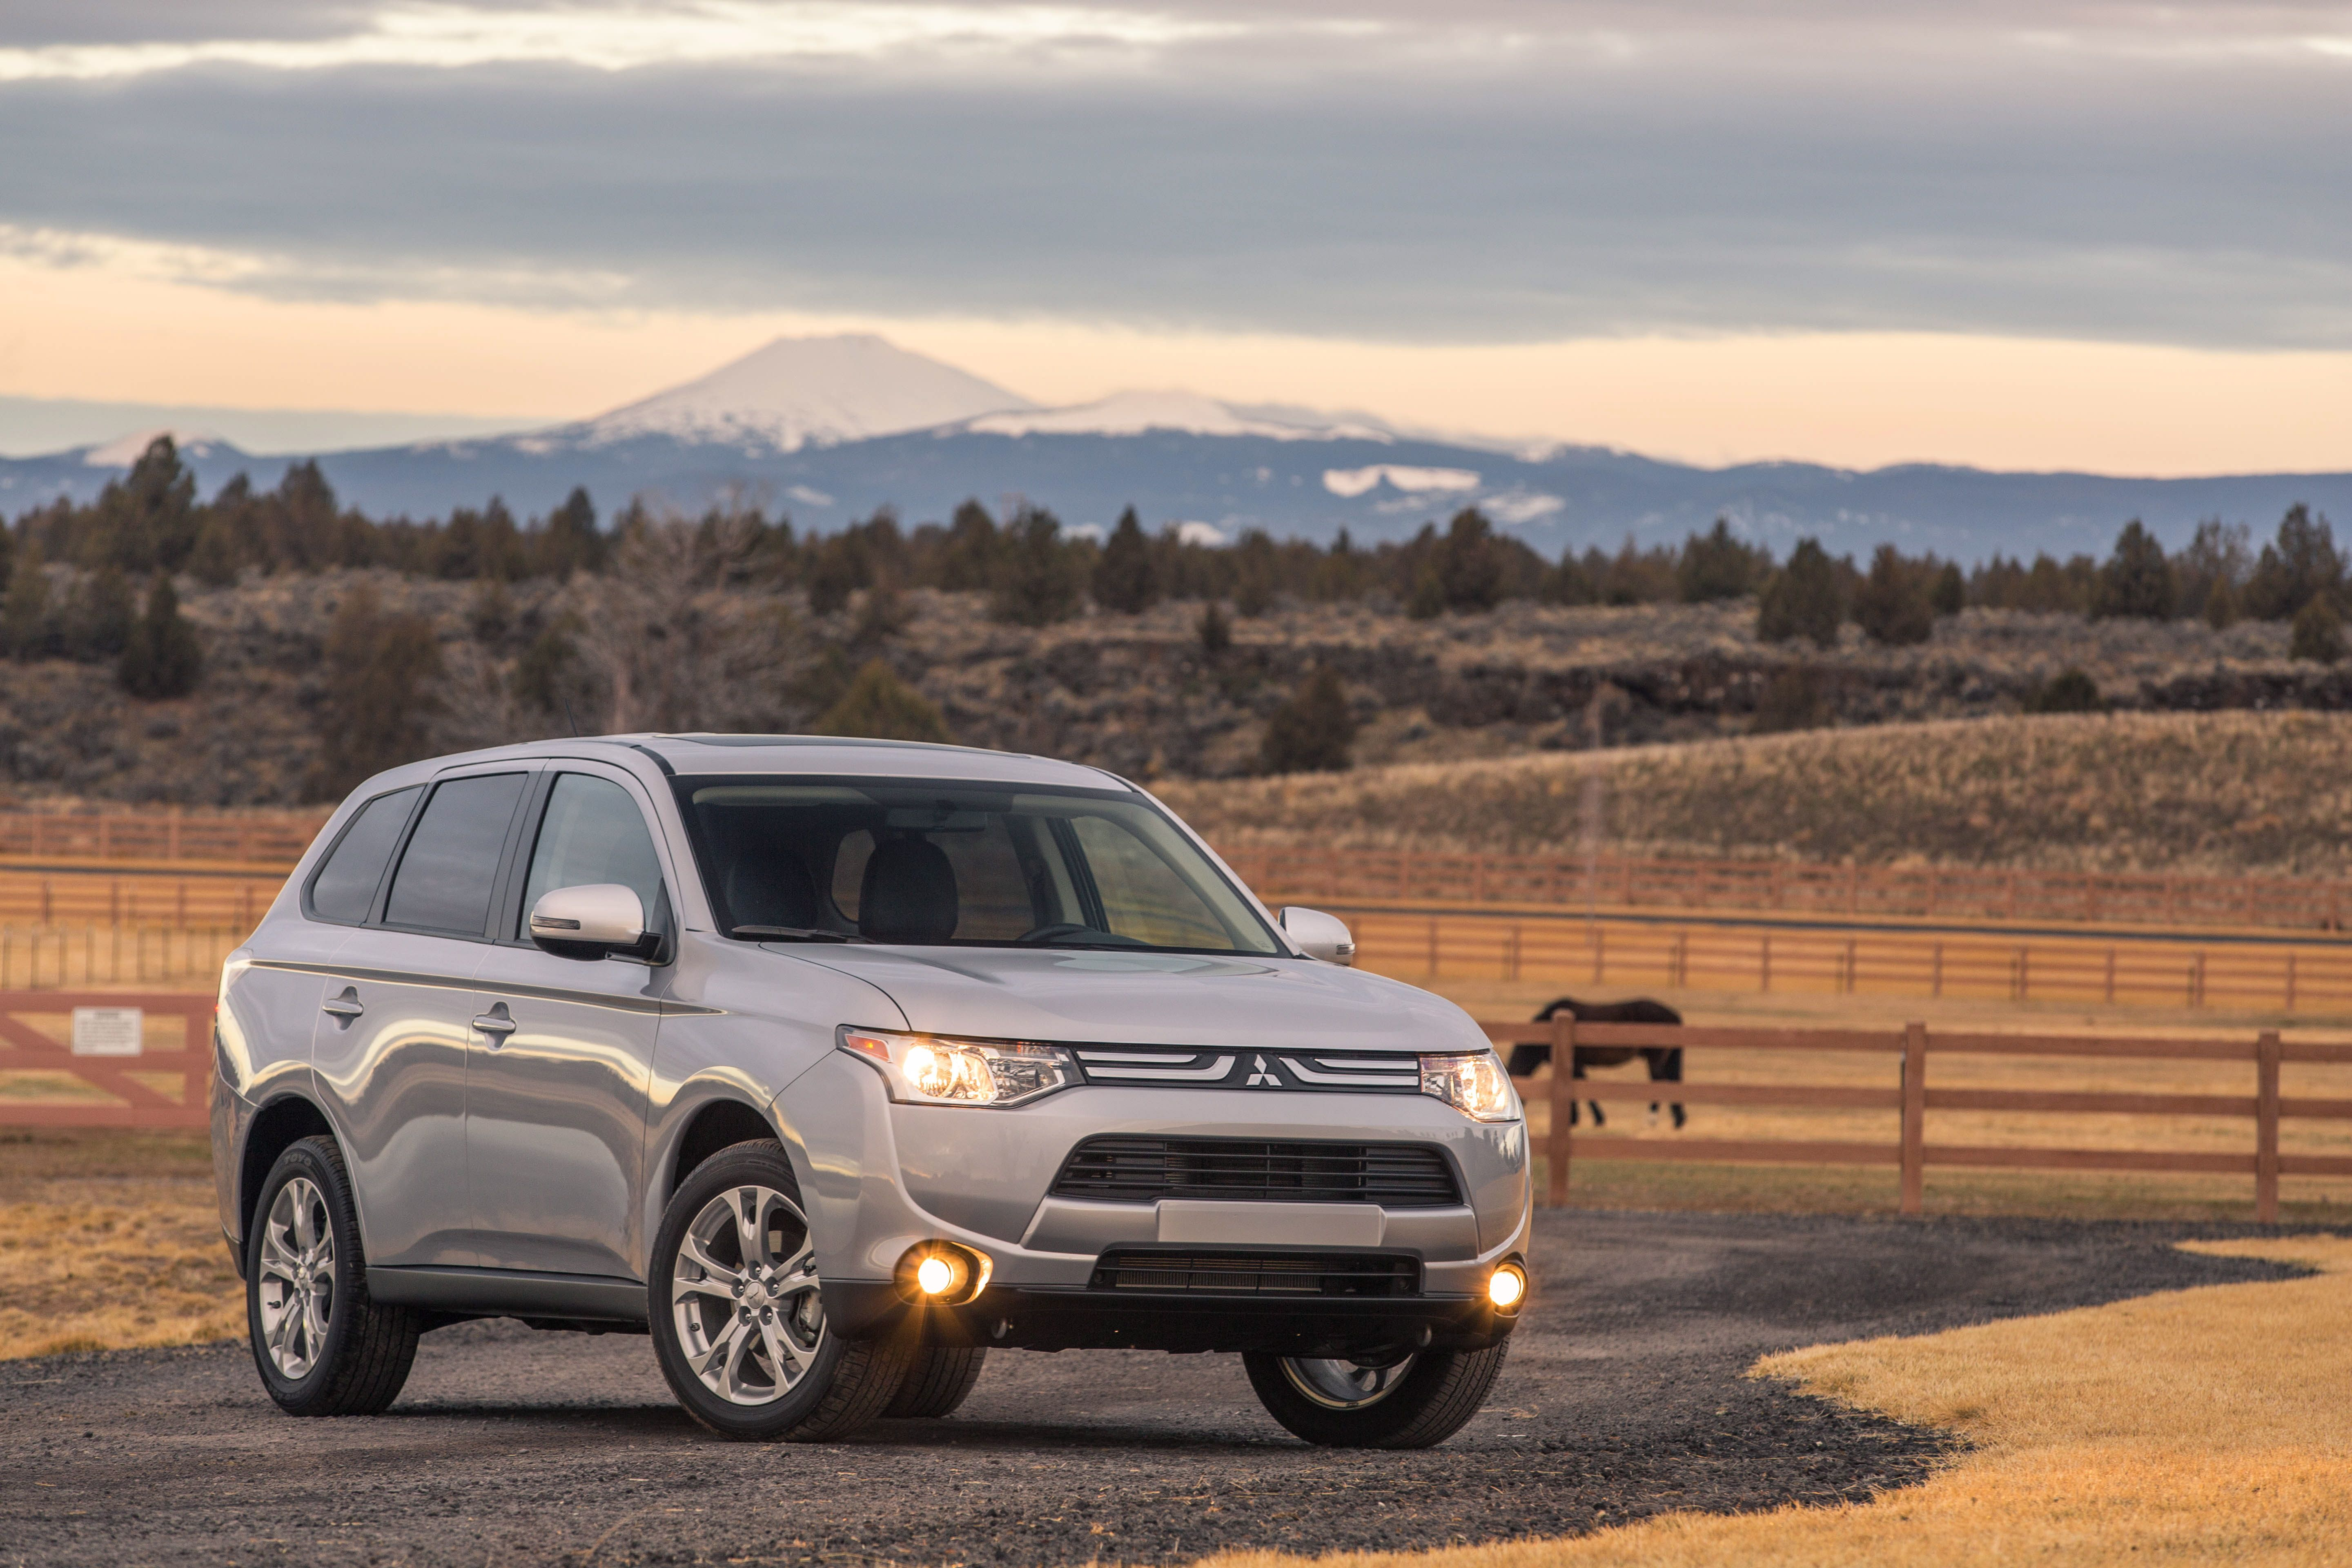 Mitsubishi Details 2014 Outlander Features and Fuel Economy